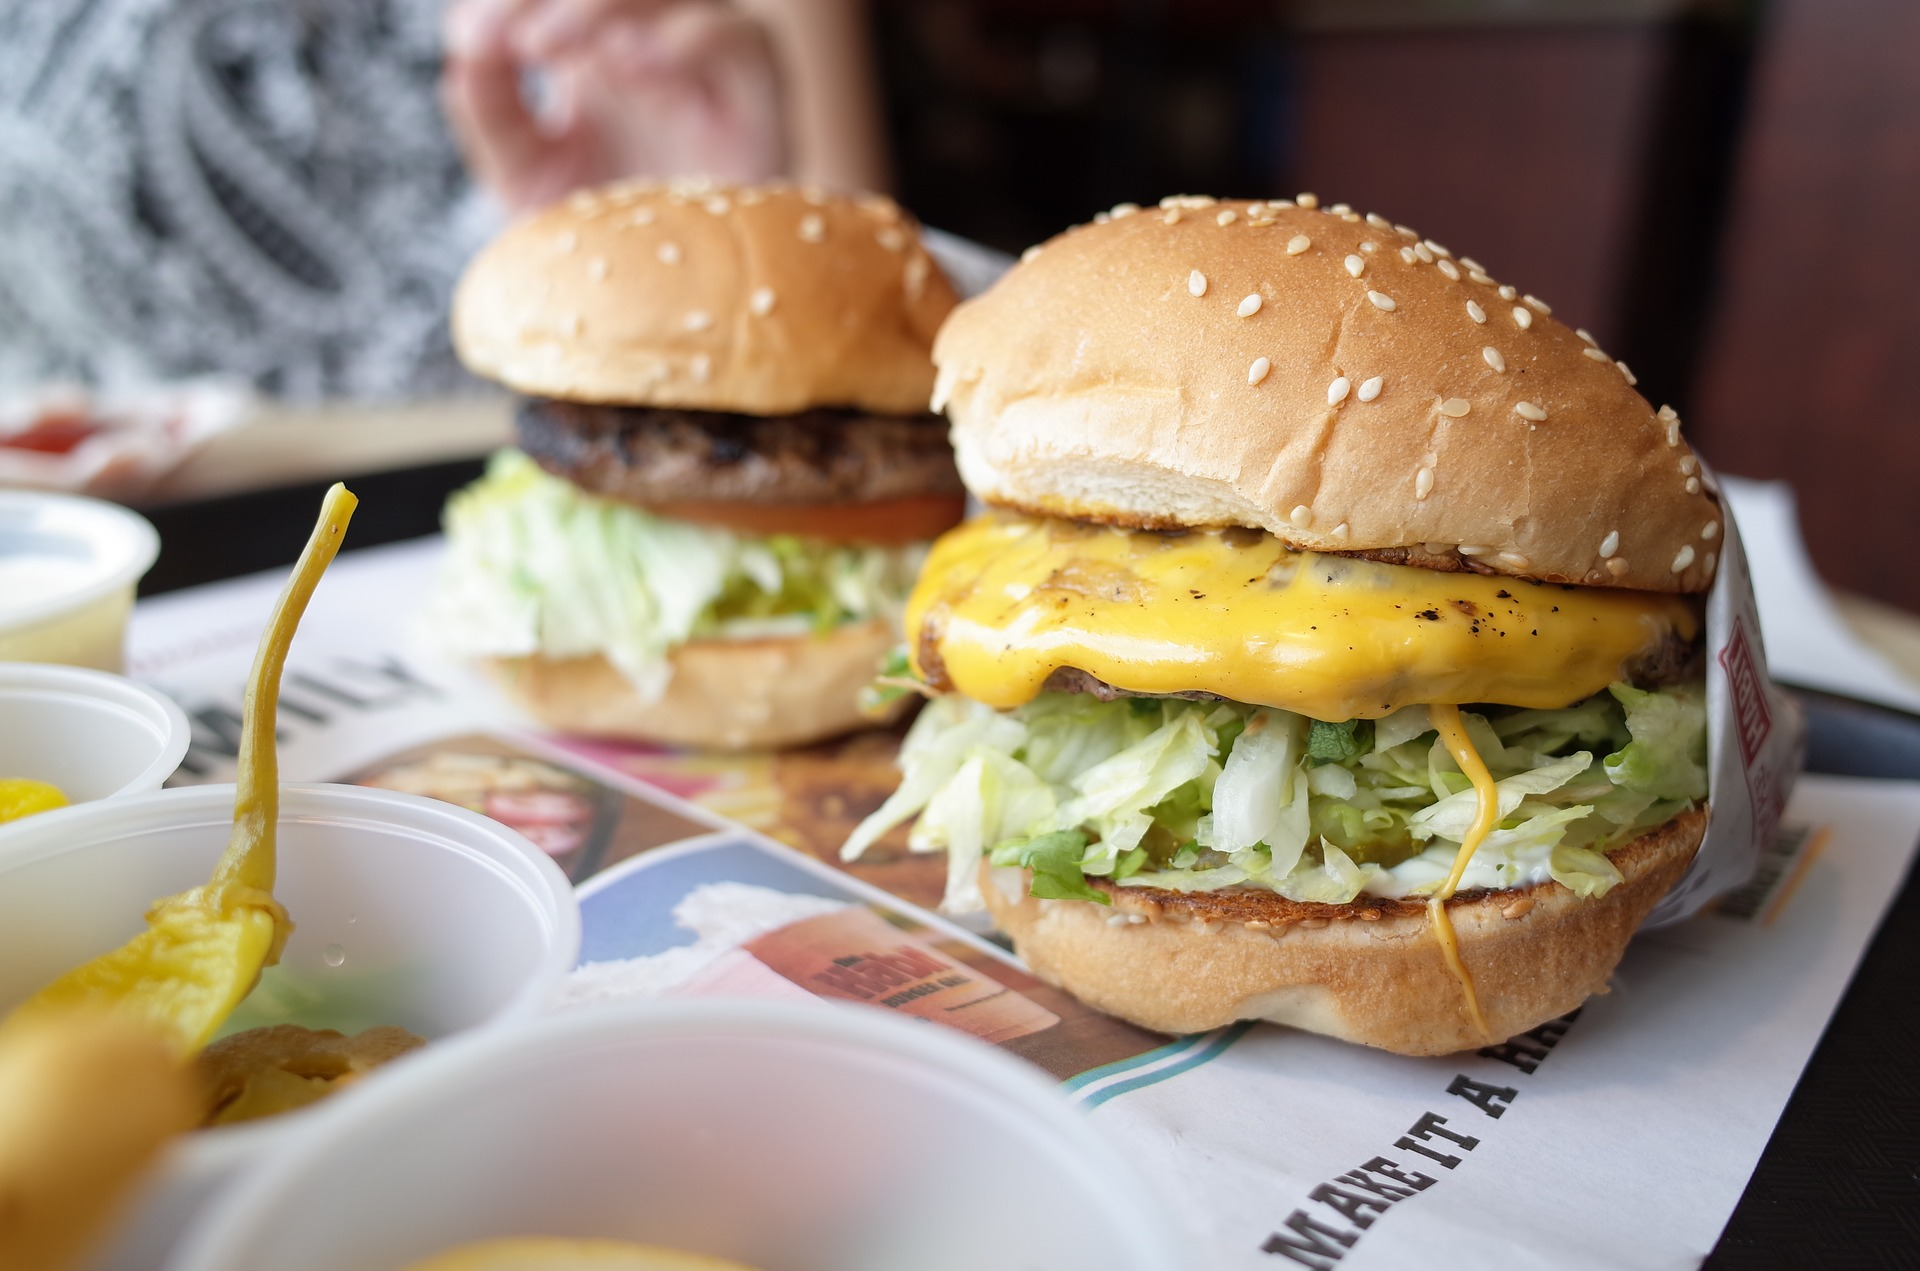 Two burgers loaded with cheese and toppings